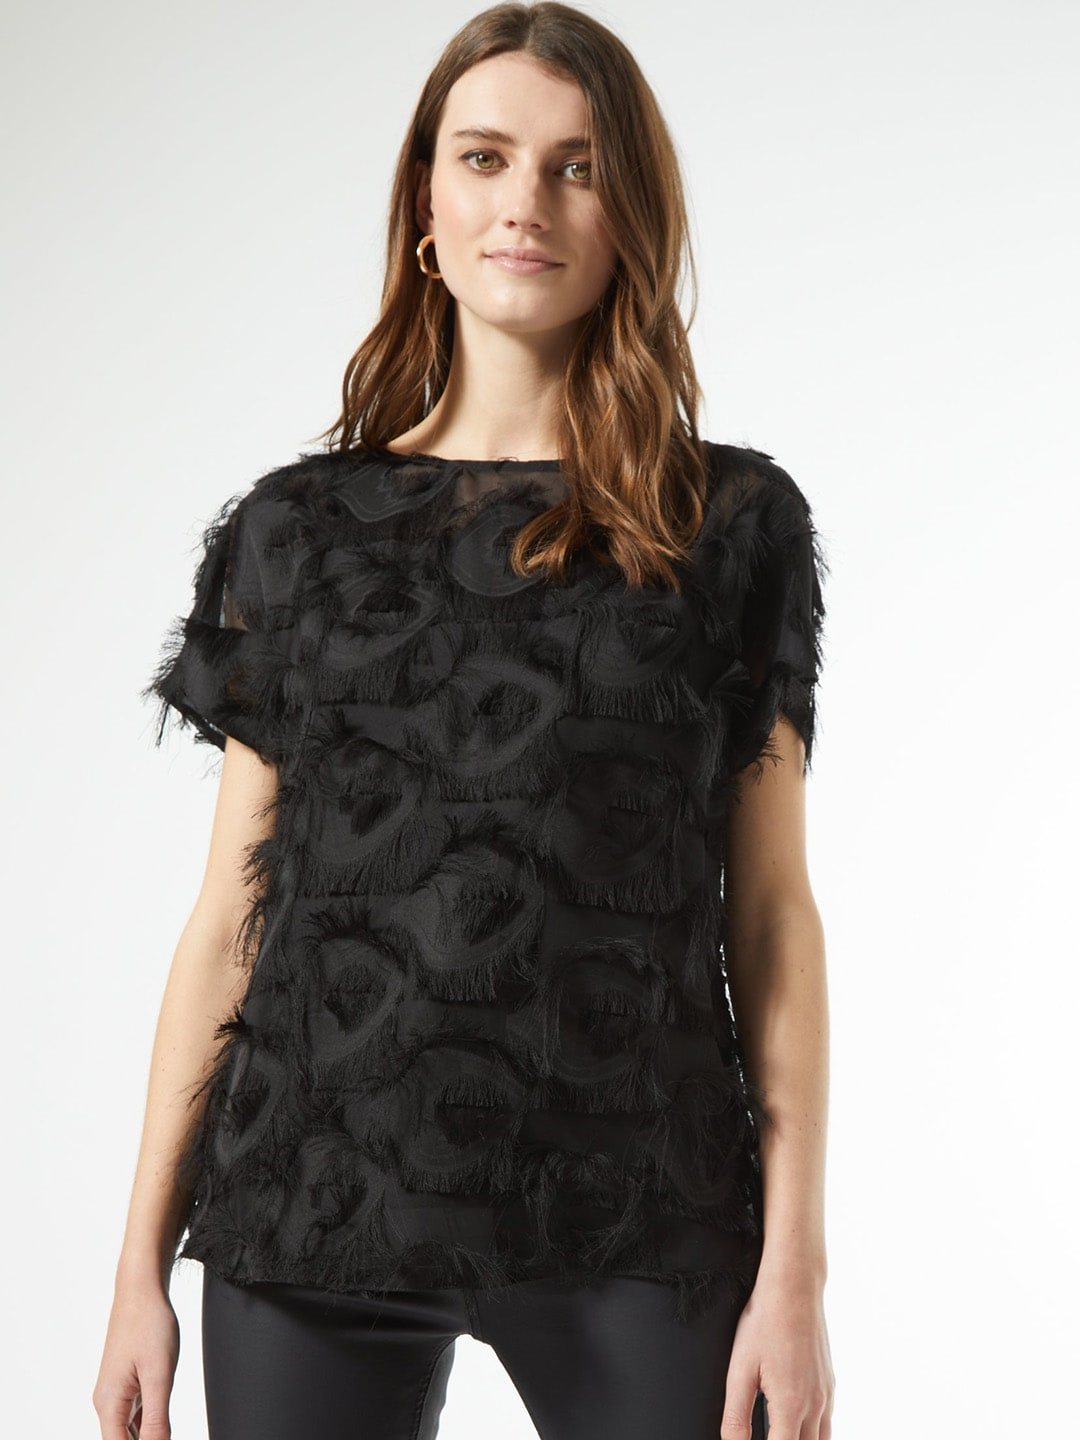 DOROTHY PERKINS Women Black Fringed Top